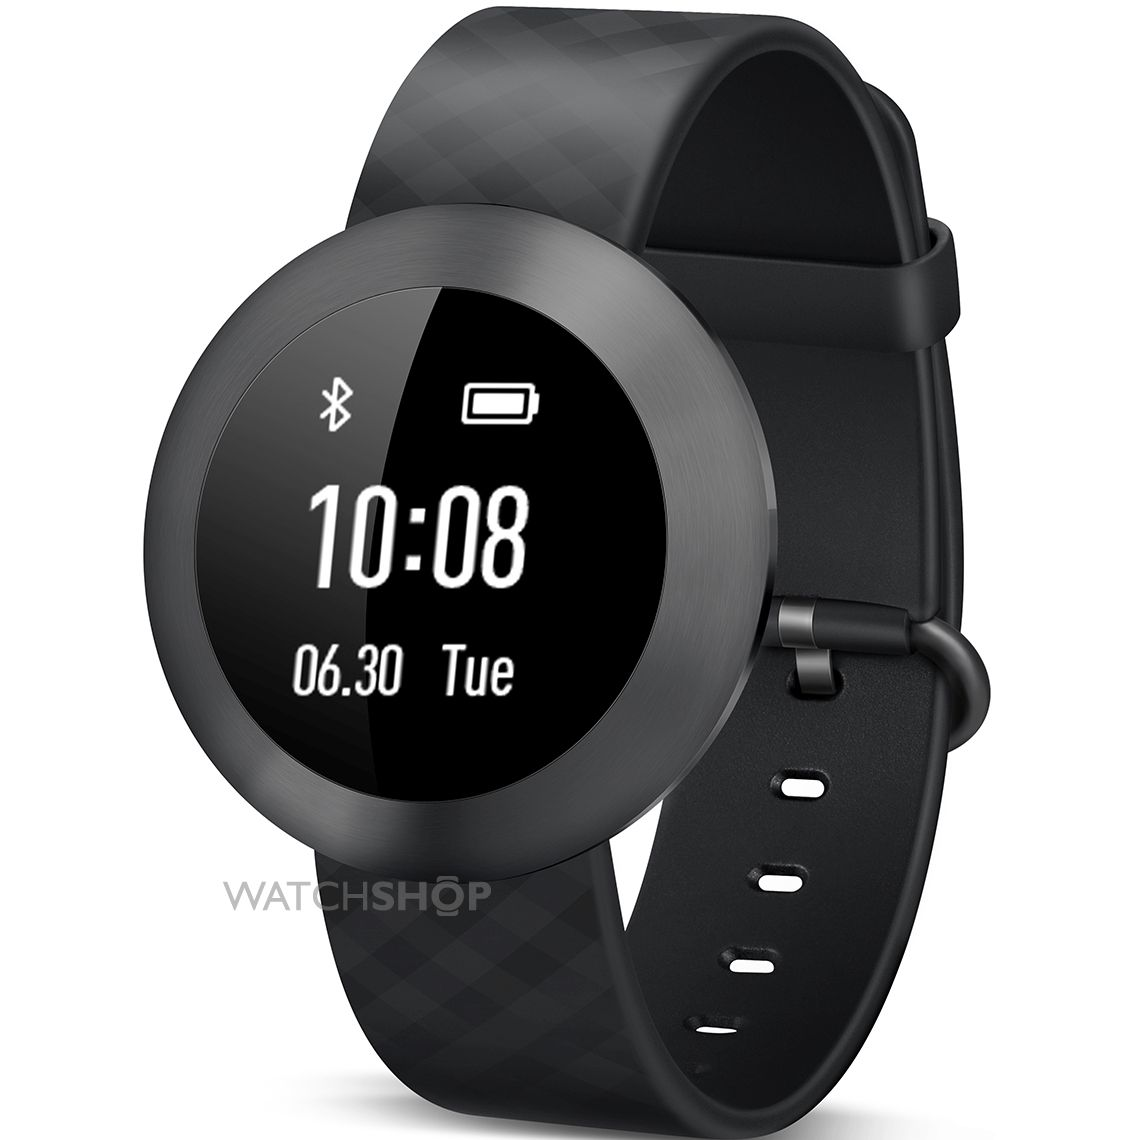 The Best Fitness Trackers For Kids Watch News Watchshopcom